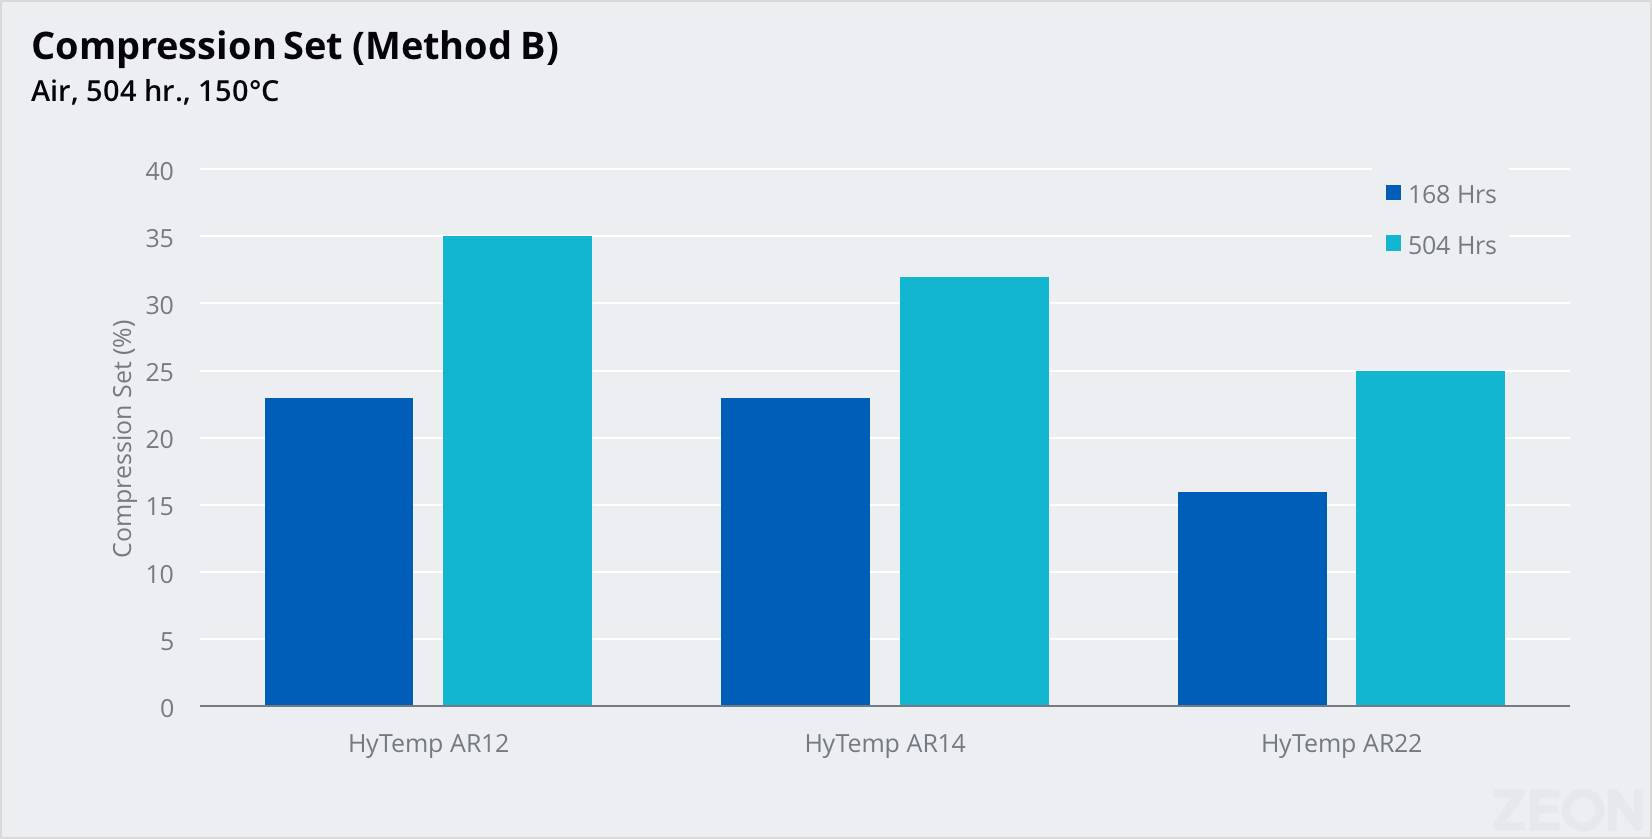 Chart showing zeon chemicals HyTemp compression set performance